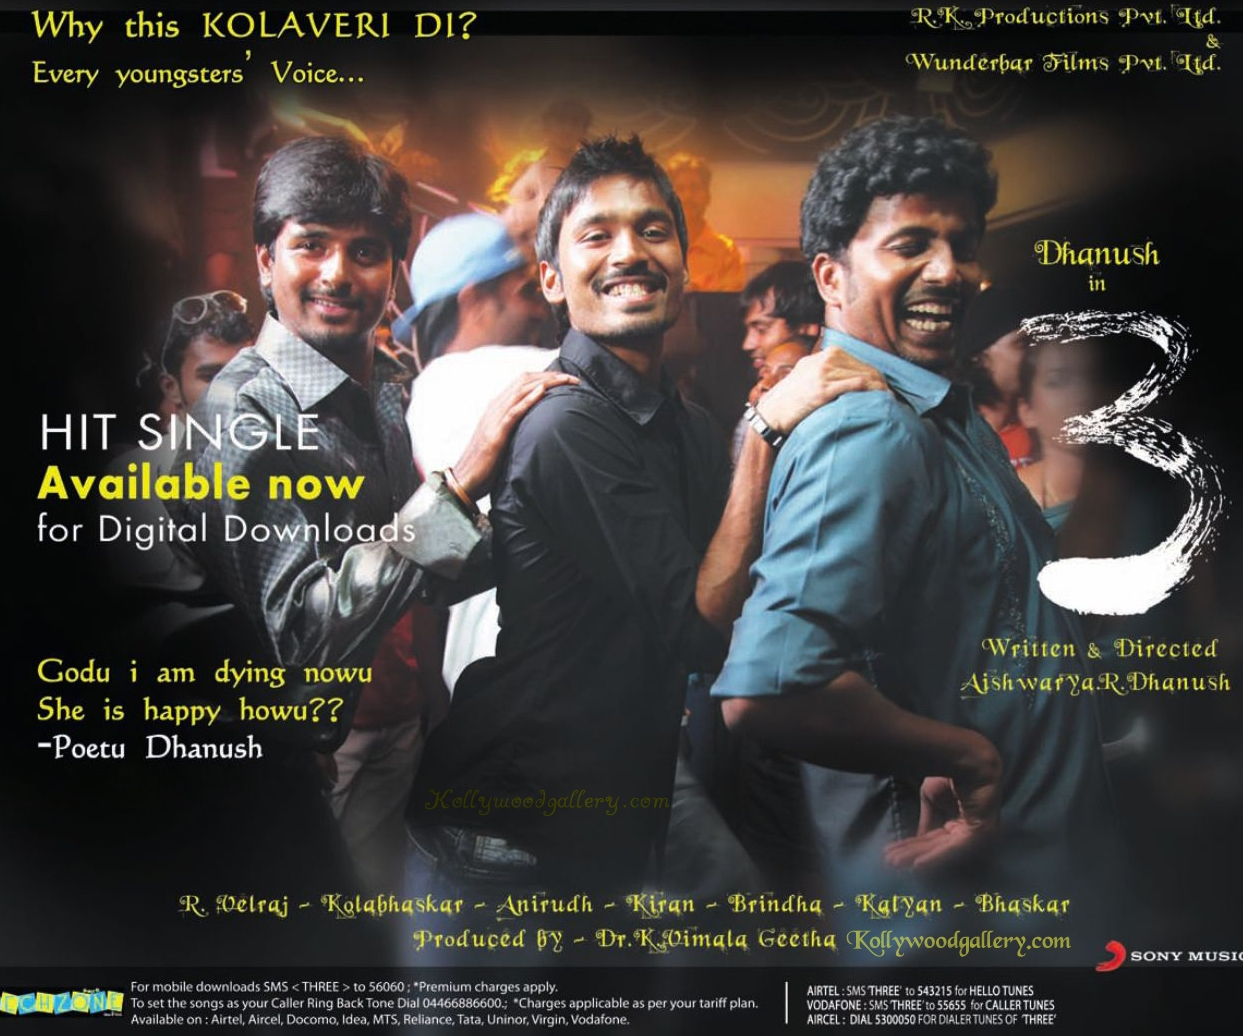 http://4.bp.blogspot.com/-oYeAHb-xop8/TxEEu4tYBVI/AAAAAAAACug/Ctgt_9yWZfk/s1600/Dhanush_3_Movie%252B_wallpapers_7.jpg